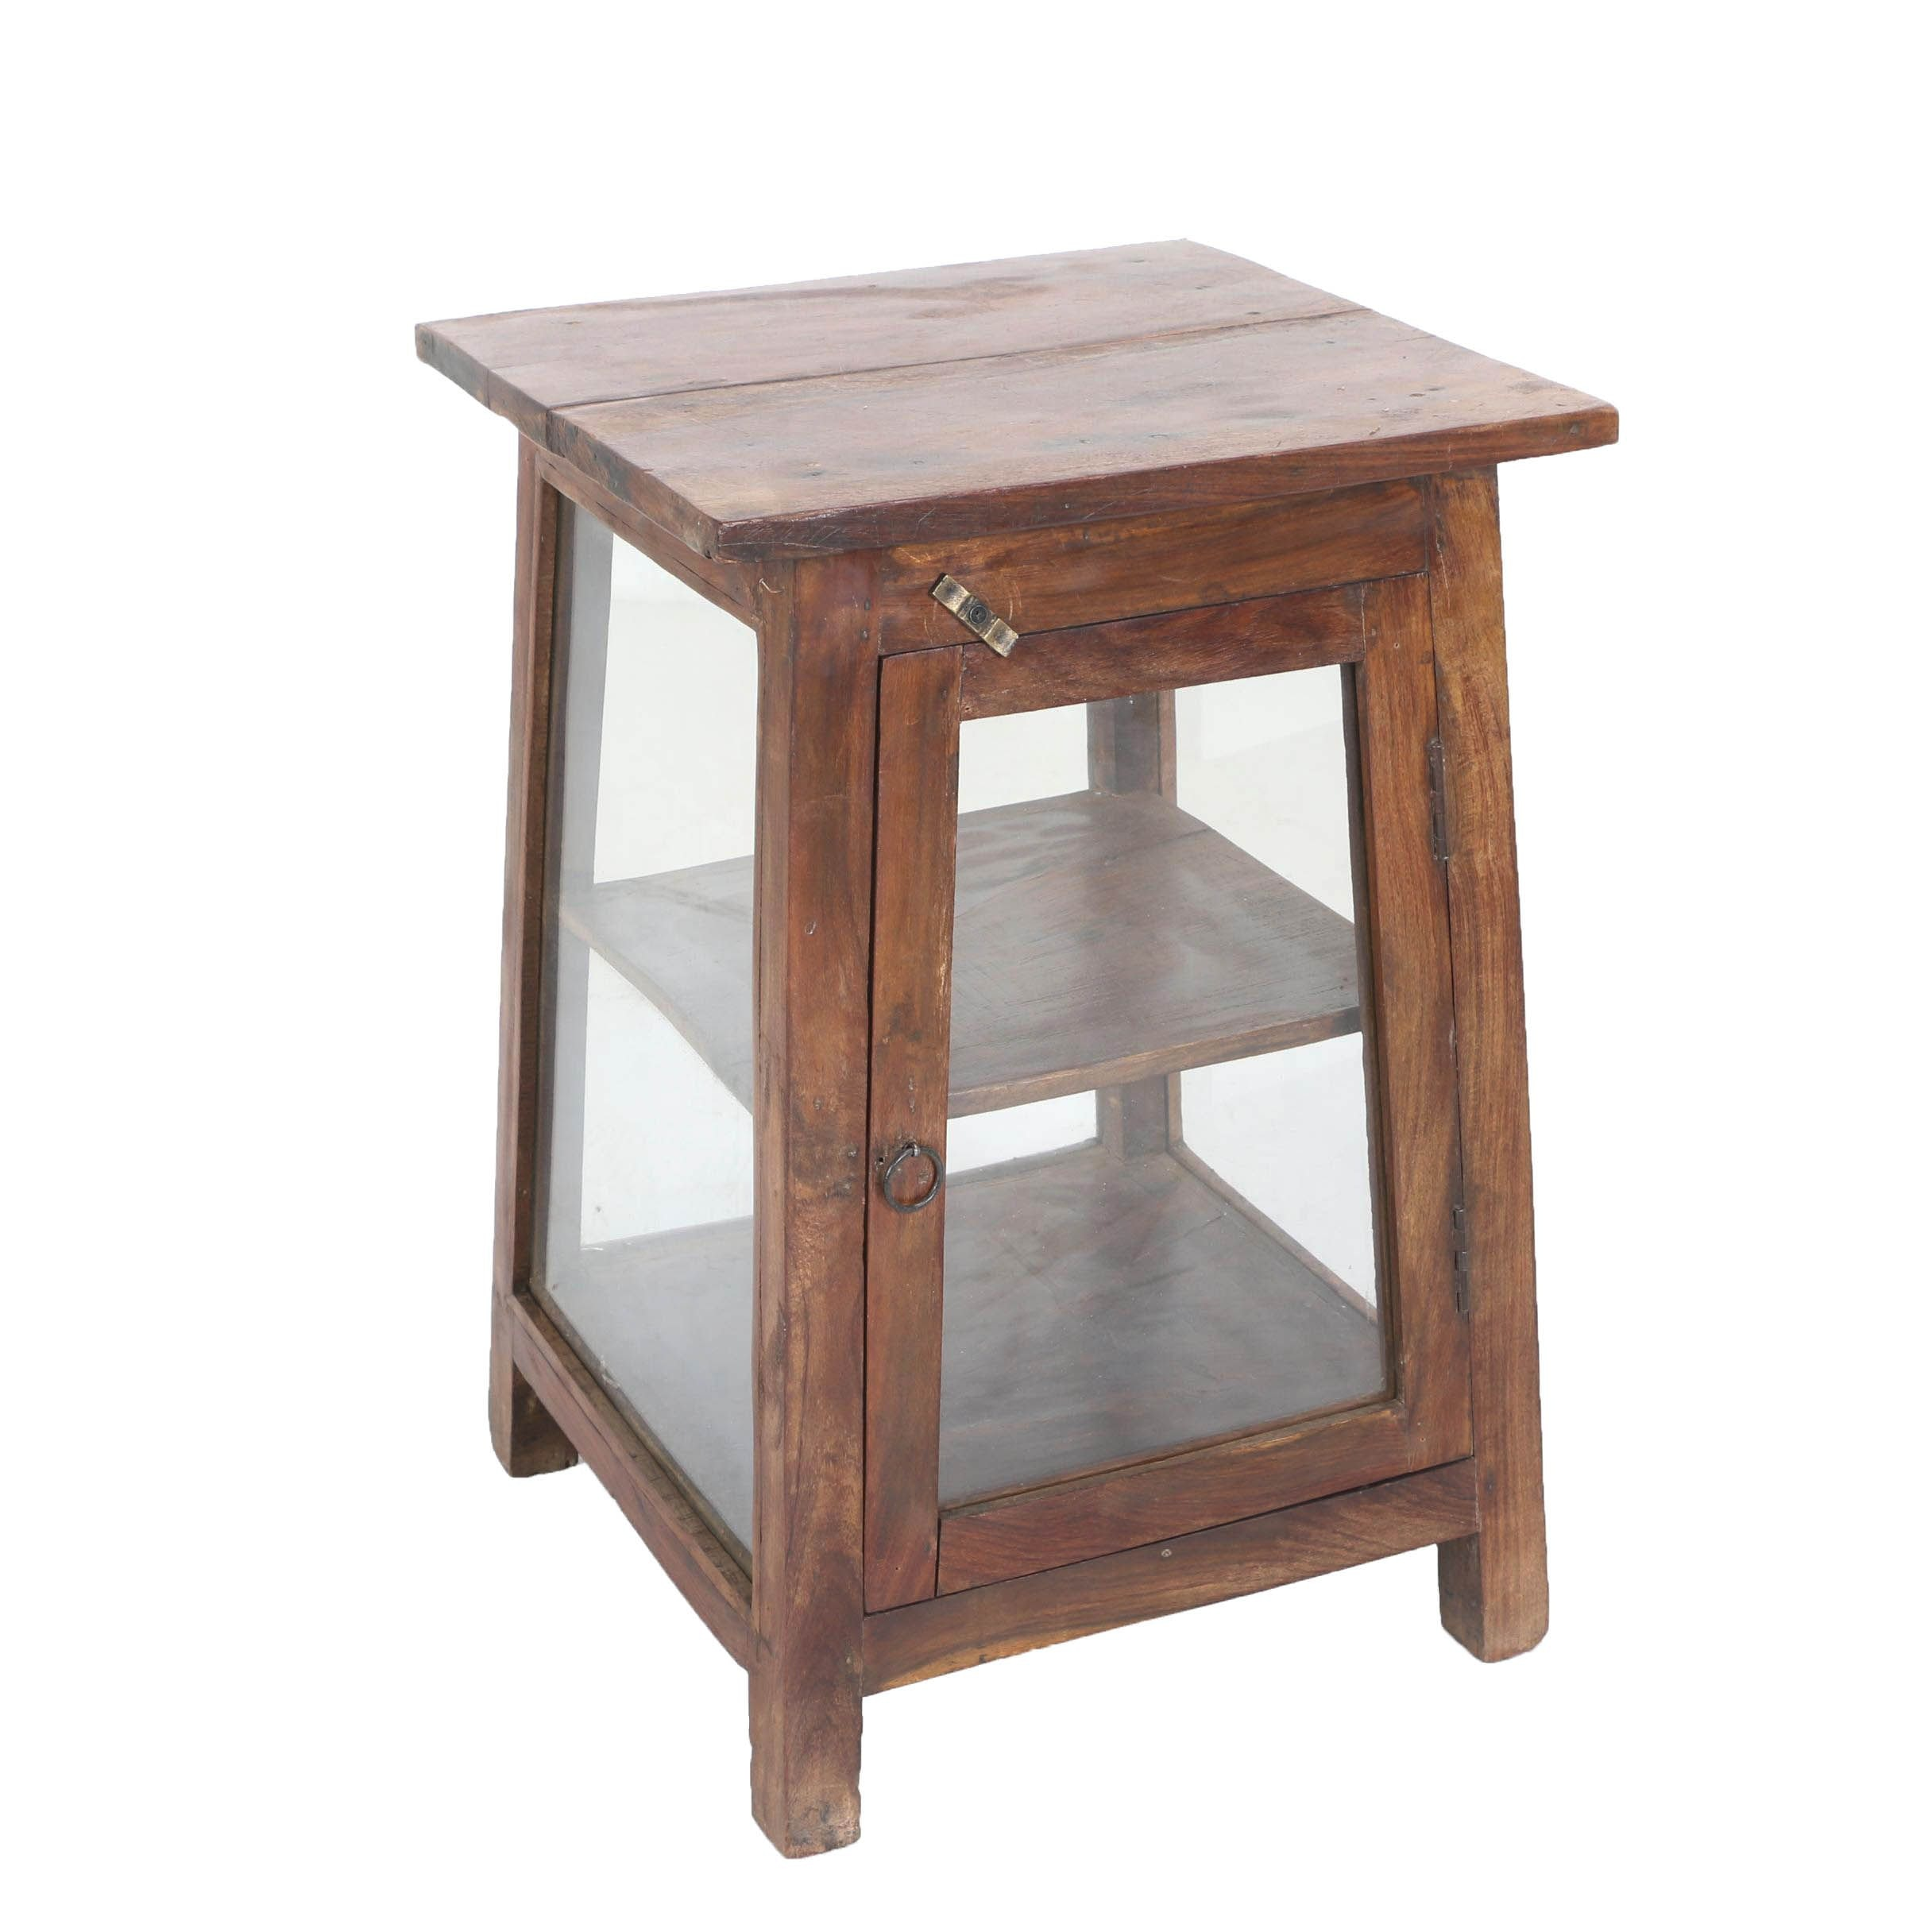 Exotic Hardwood and Glass Display Table, Late 20th Century